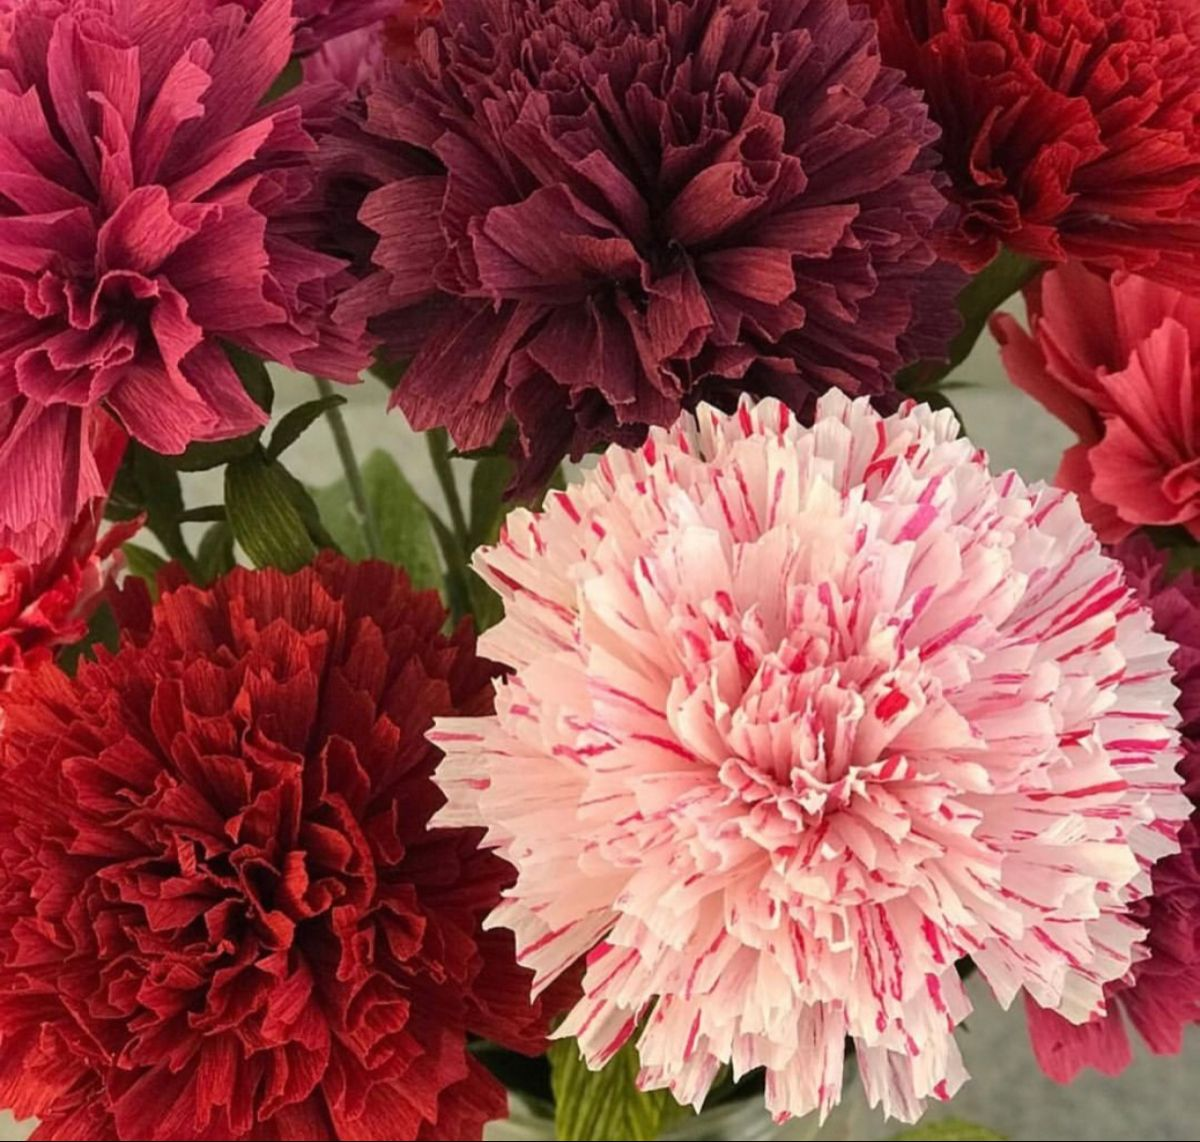 Carnations Near Me In 2020 Carnation Flower Flowers Flowers For Sale